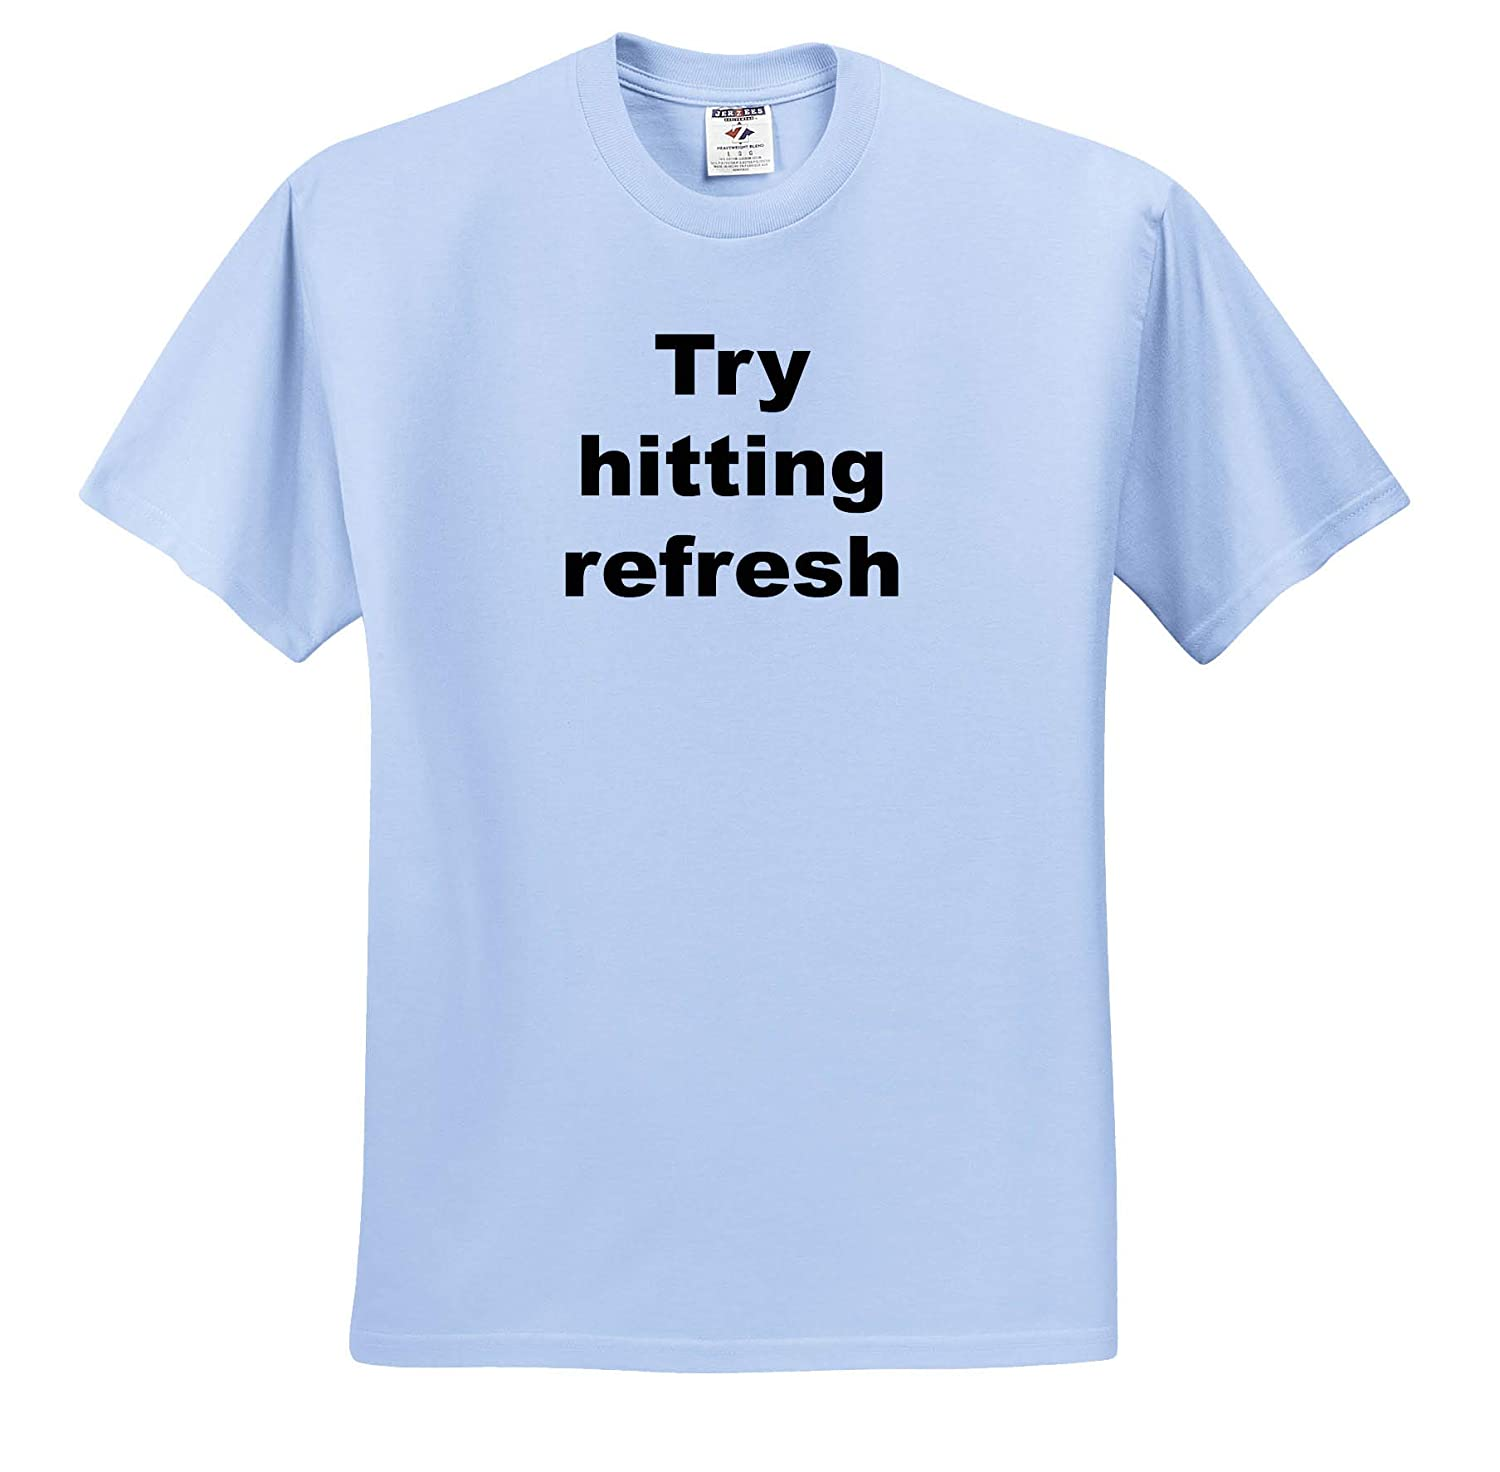 T-Shirts Image of Try Hitting Refresh 3dRose Carrie Merchant Quote